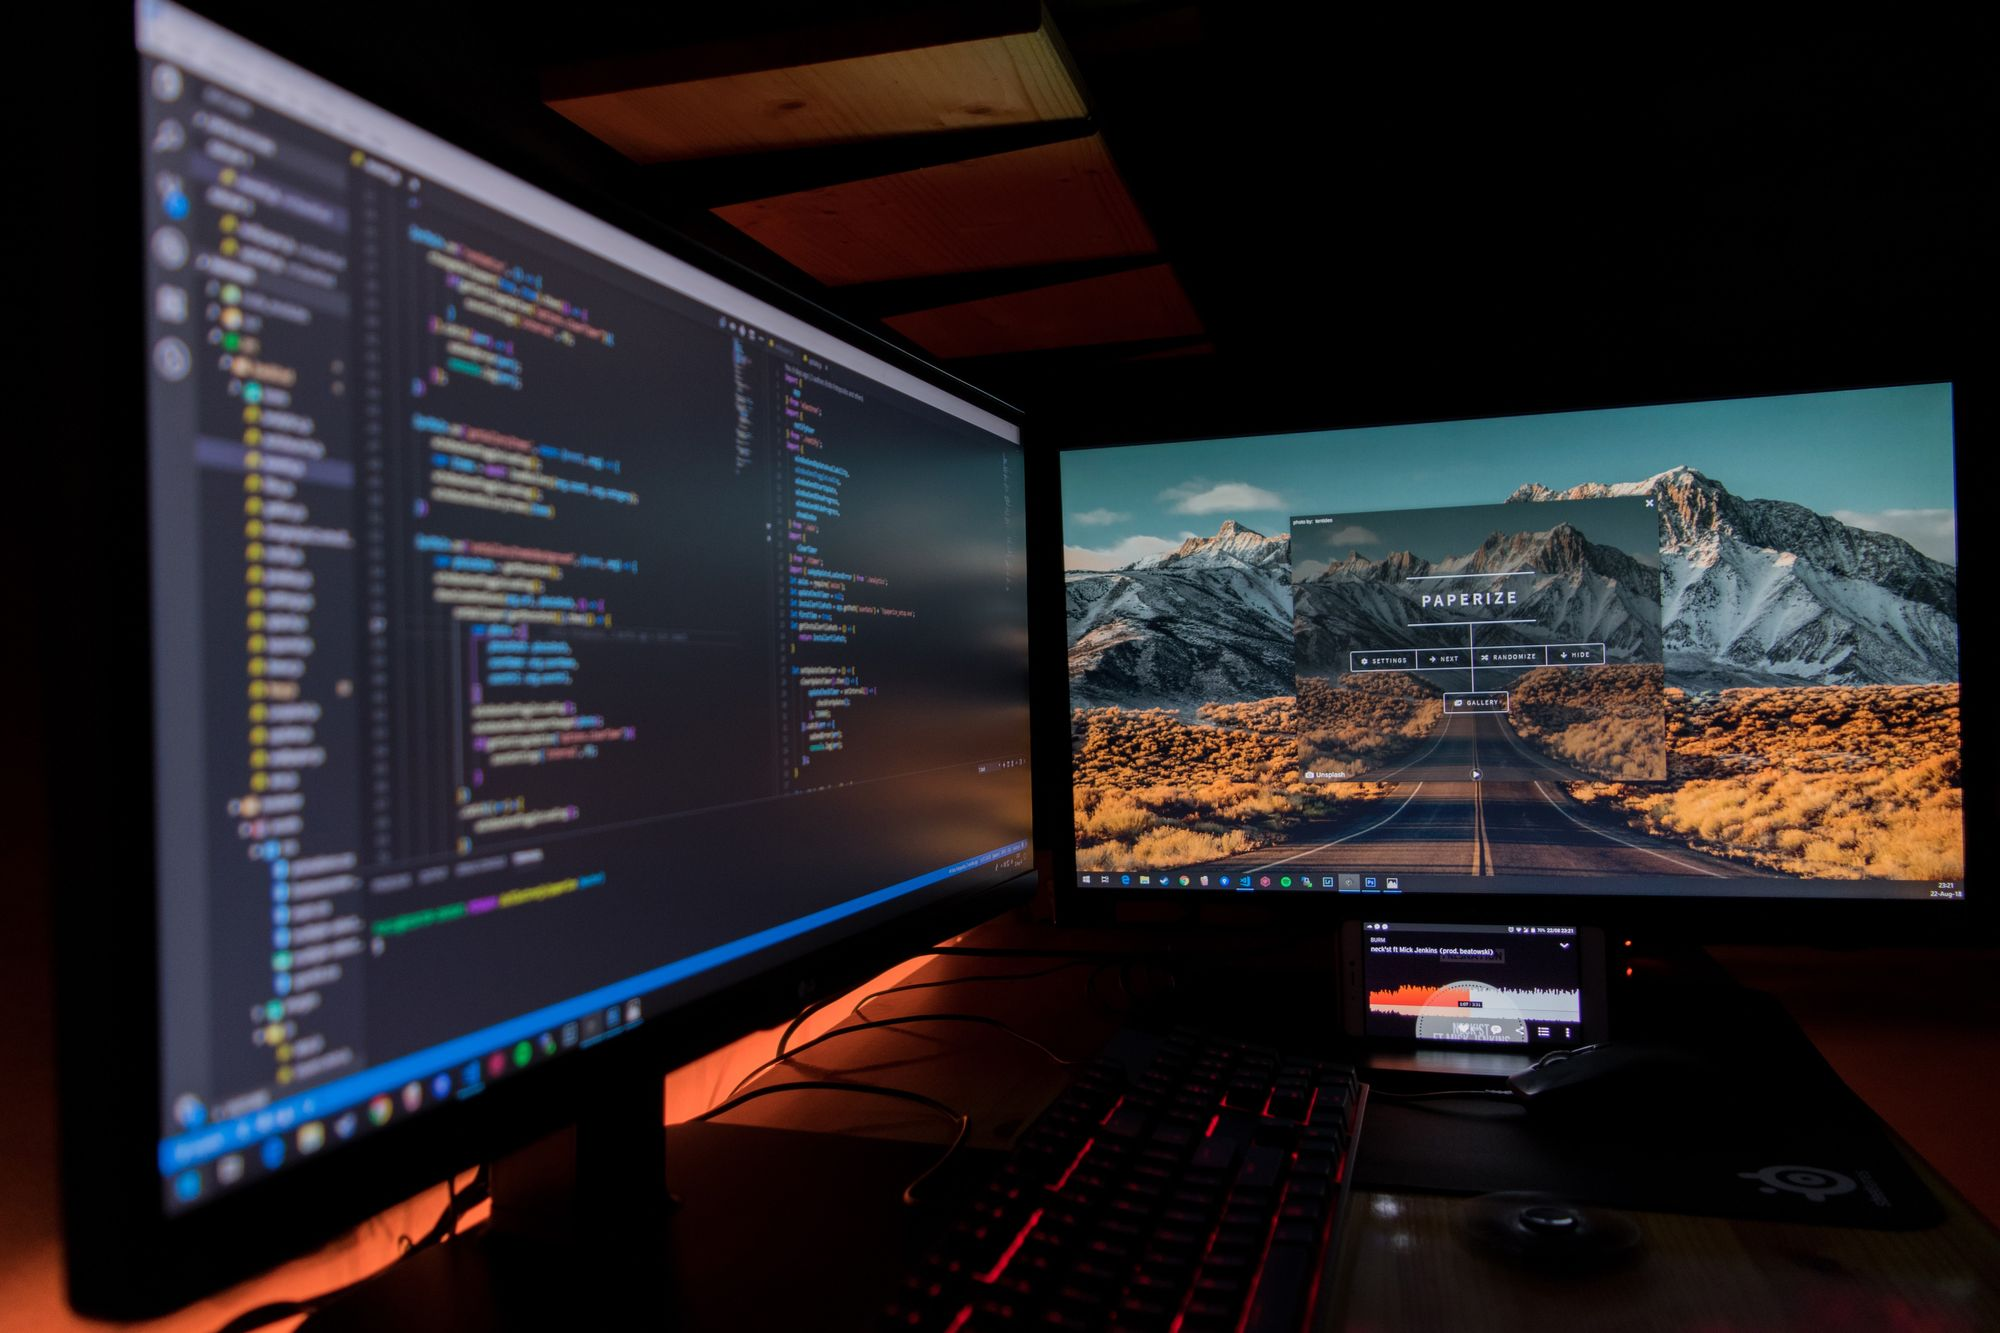 A dual monitor setup with code on the left and a mountainous background with a road leading off into the distance on the right.